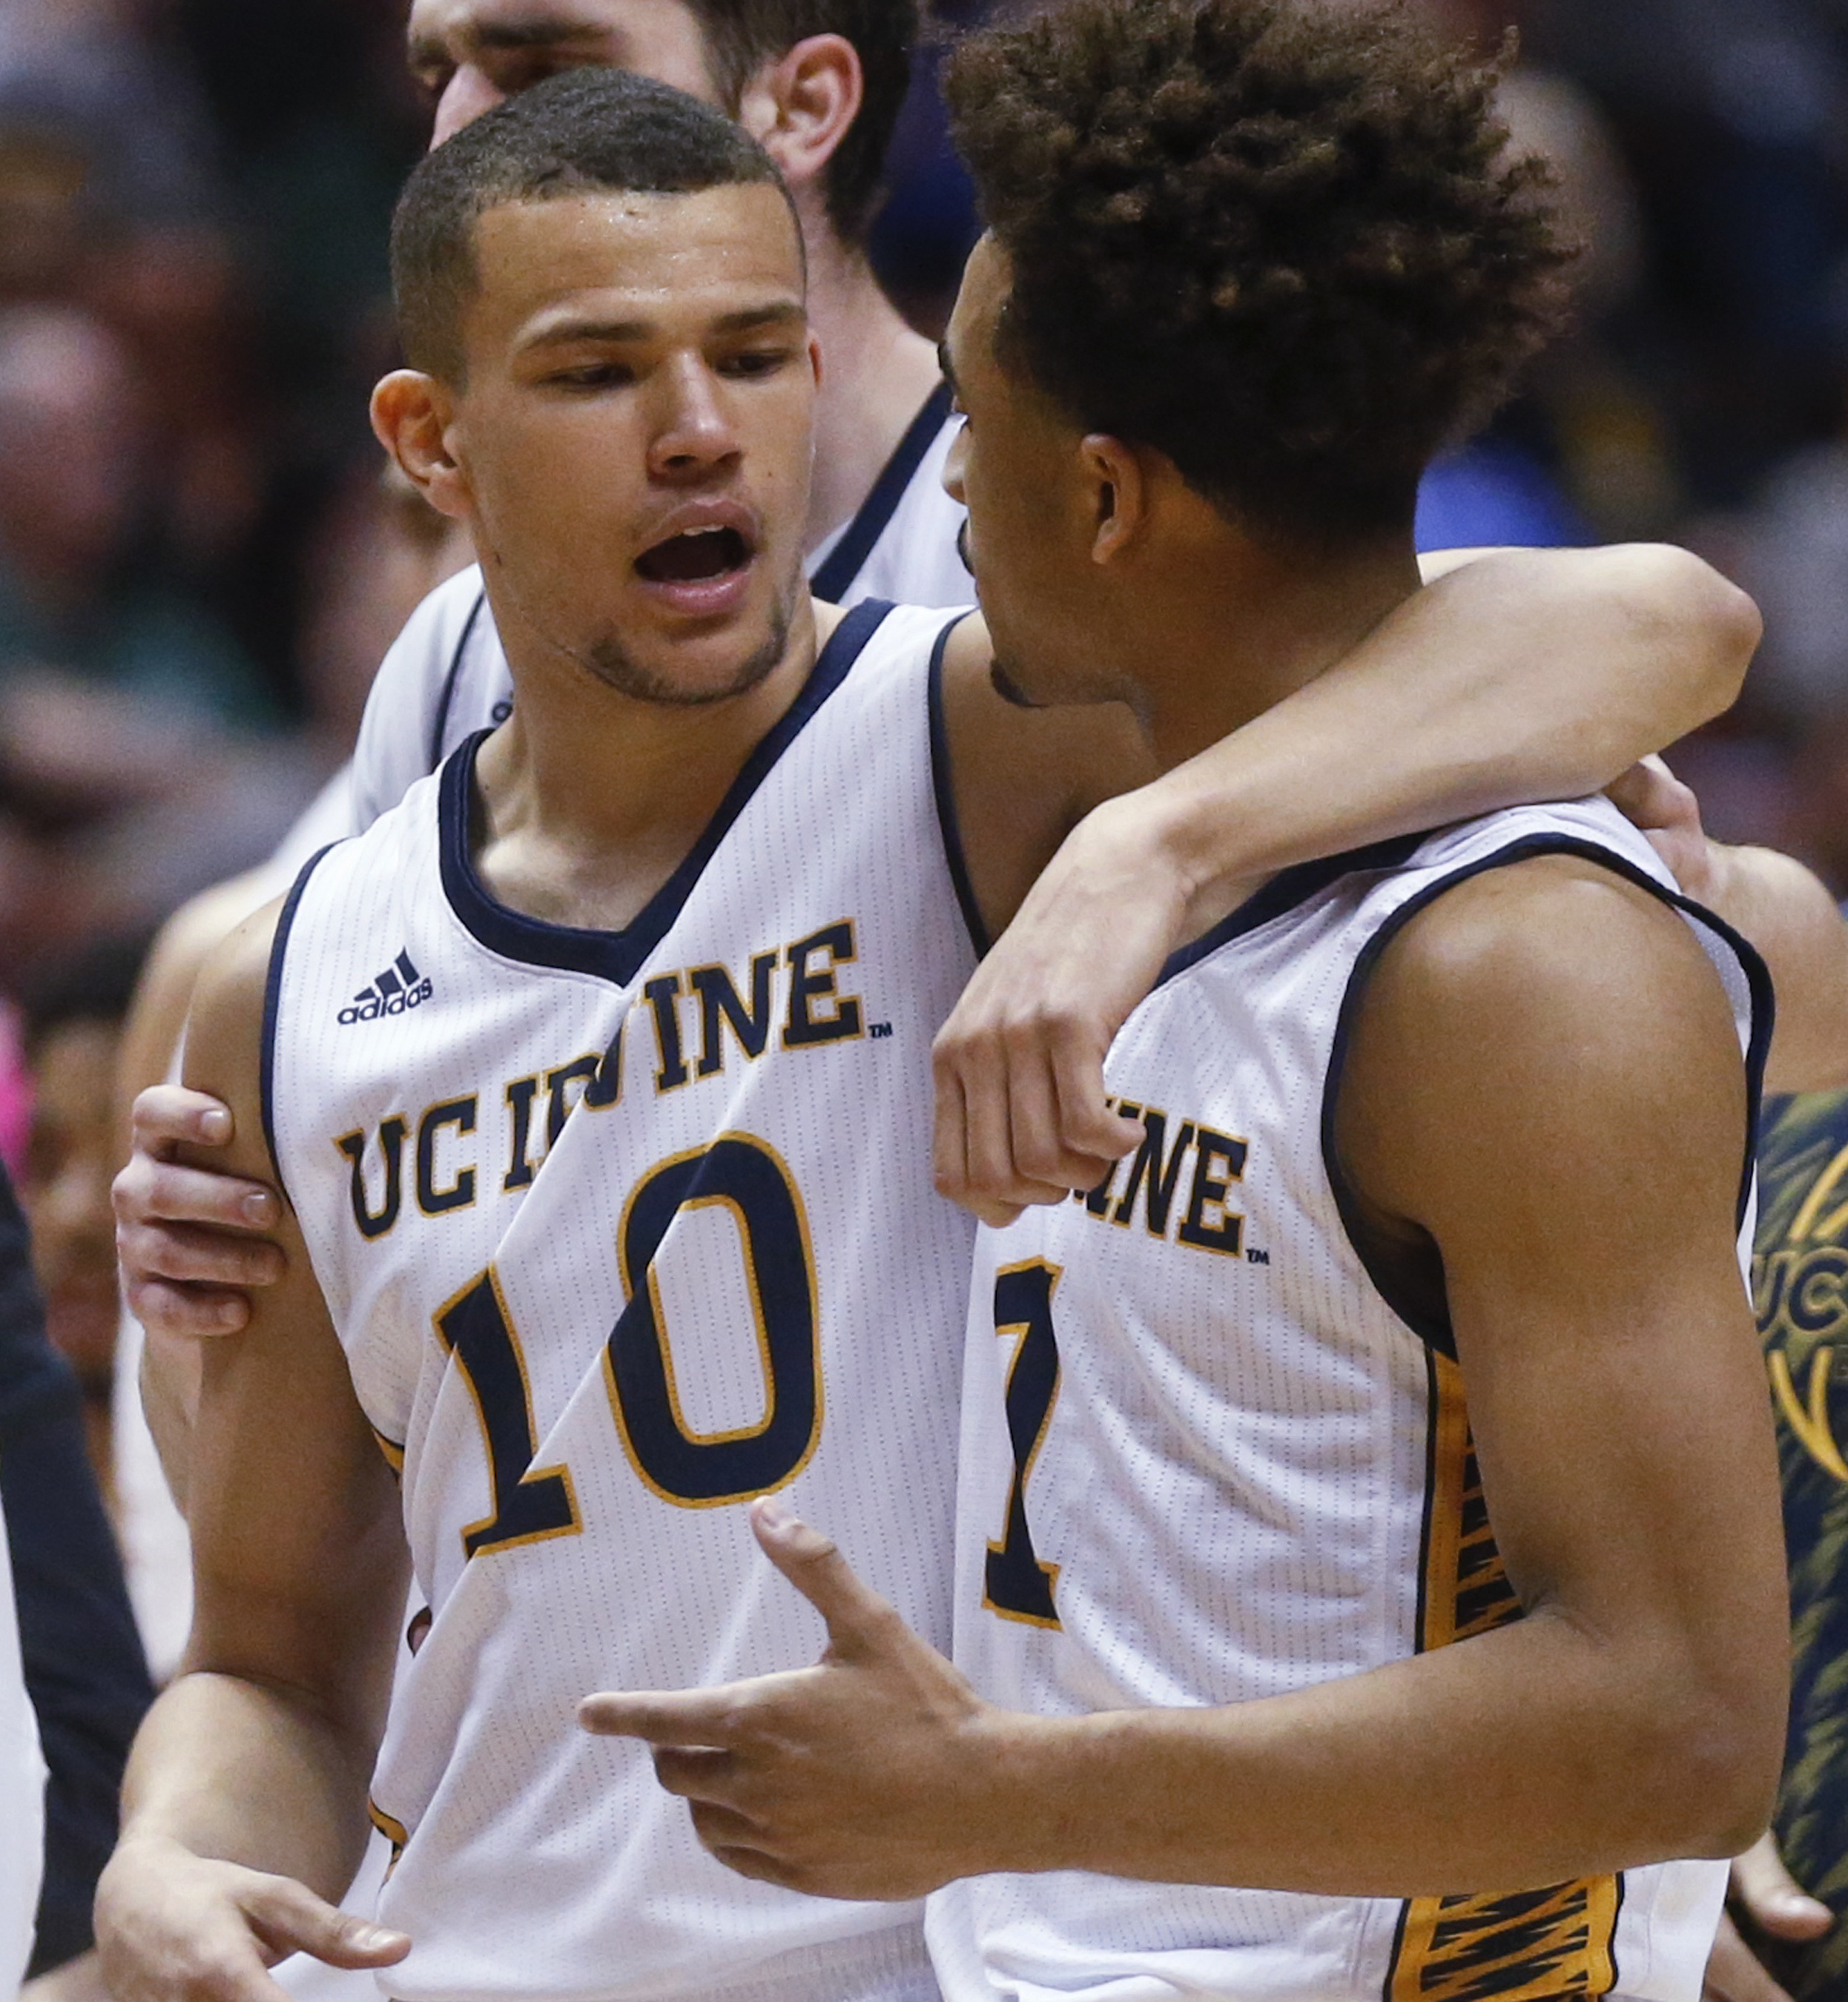 UC Irvine guard Luke Nelson (10) puts his arm around teammate Alex Young during a timeout in the second half of an NCAA college basketball game against Cal Poly at the Big West conference men's tournament Thursday, March 10, 2016, in Anaheim, Calif. Nelso